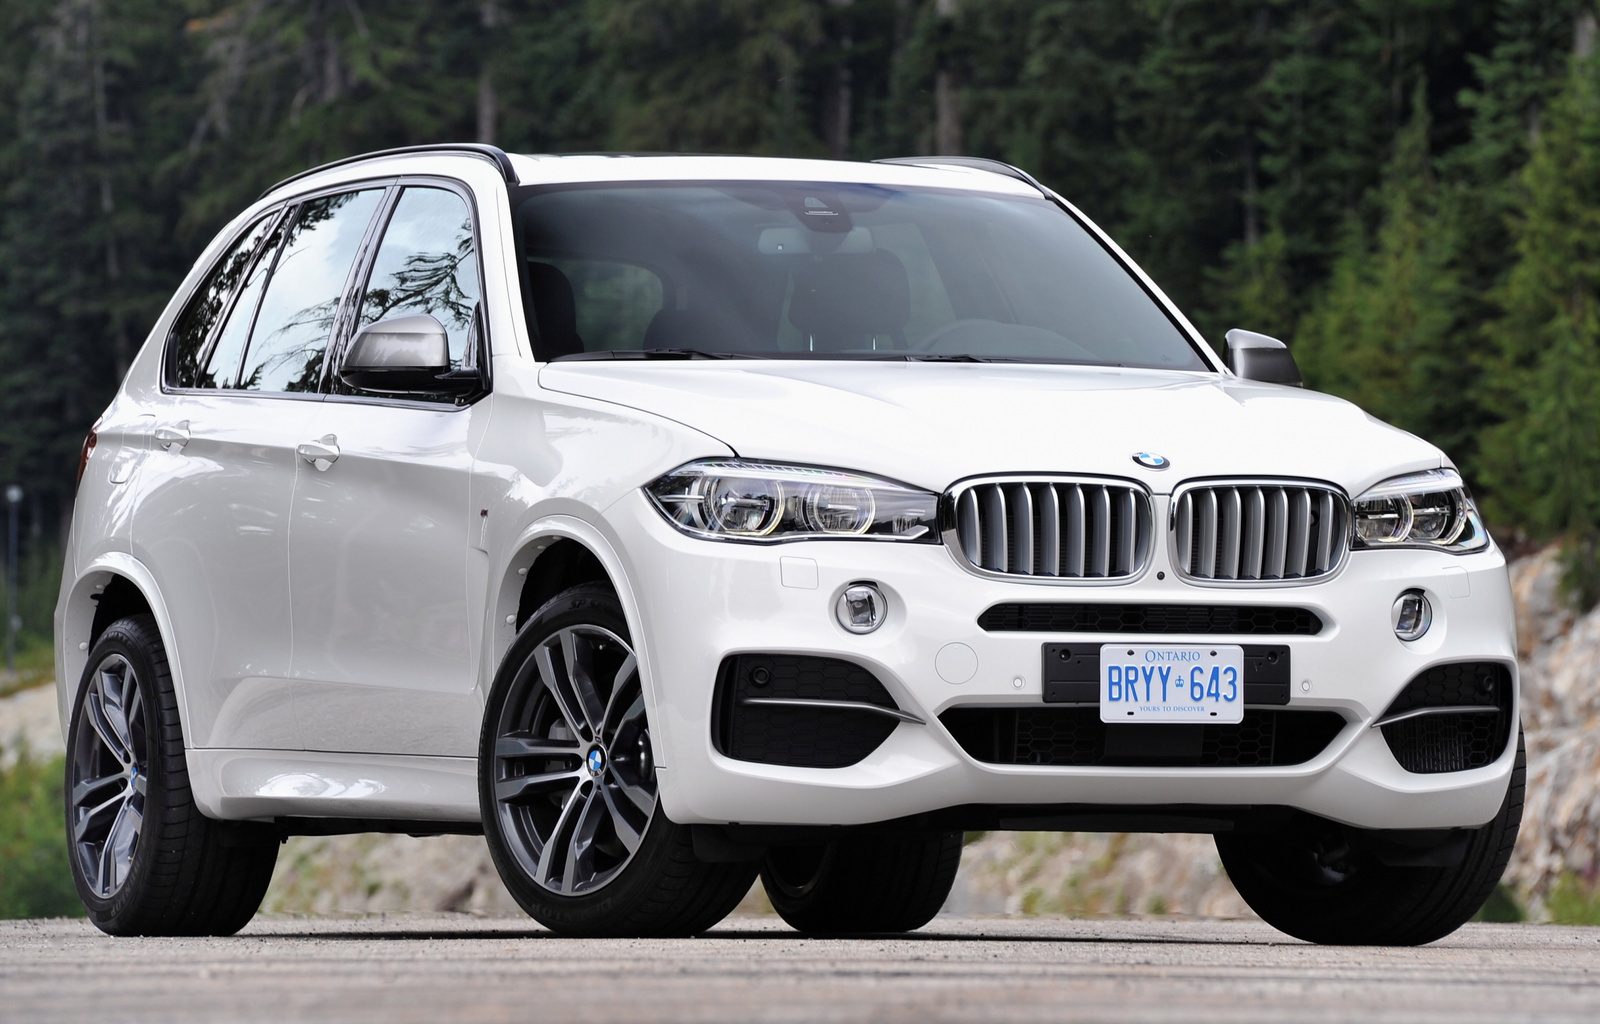 New 2015 2016 Bmw X5 For Sale Cargurus